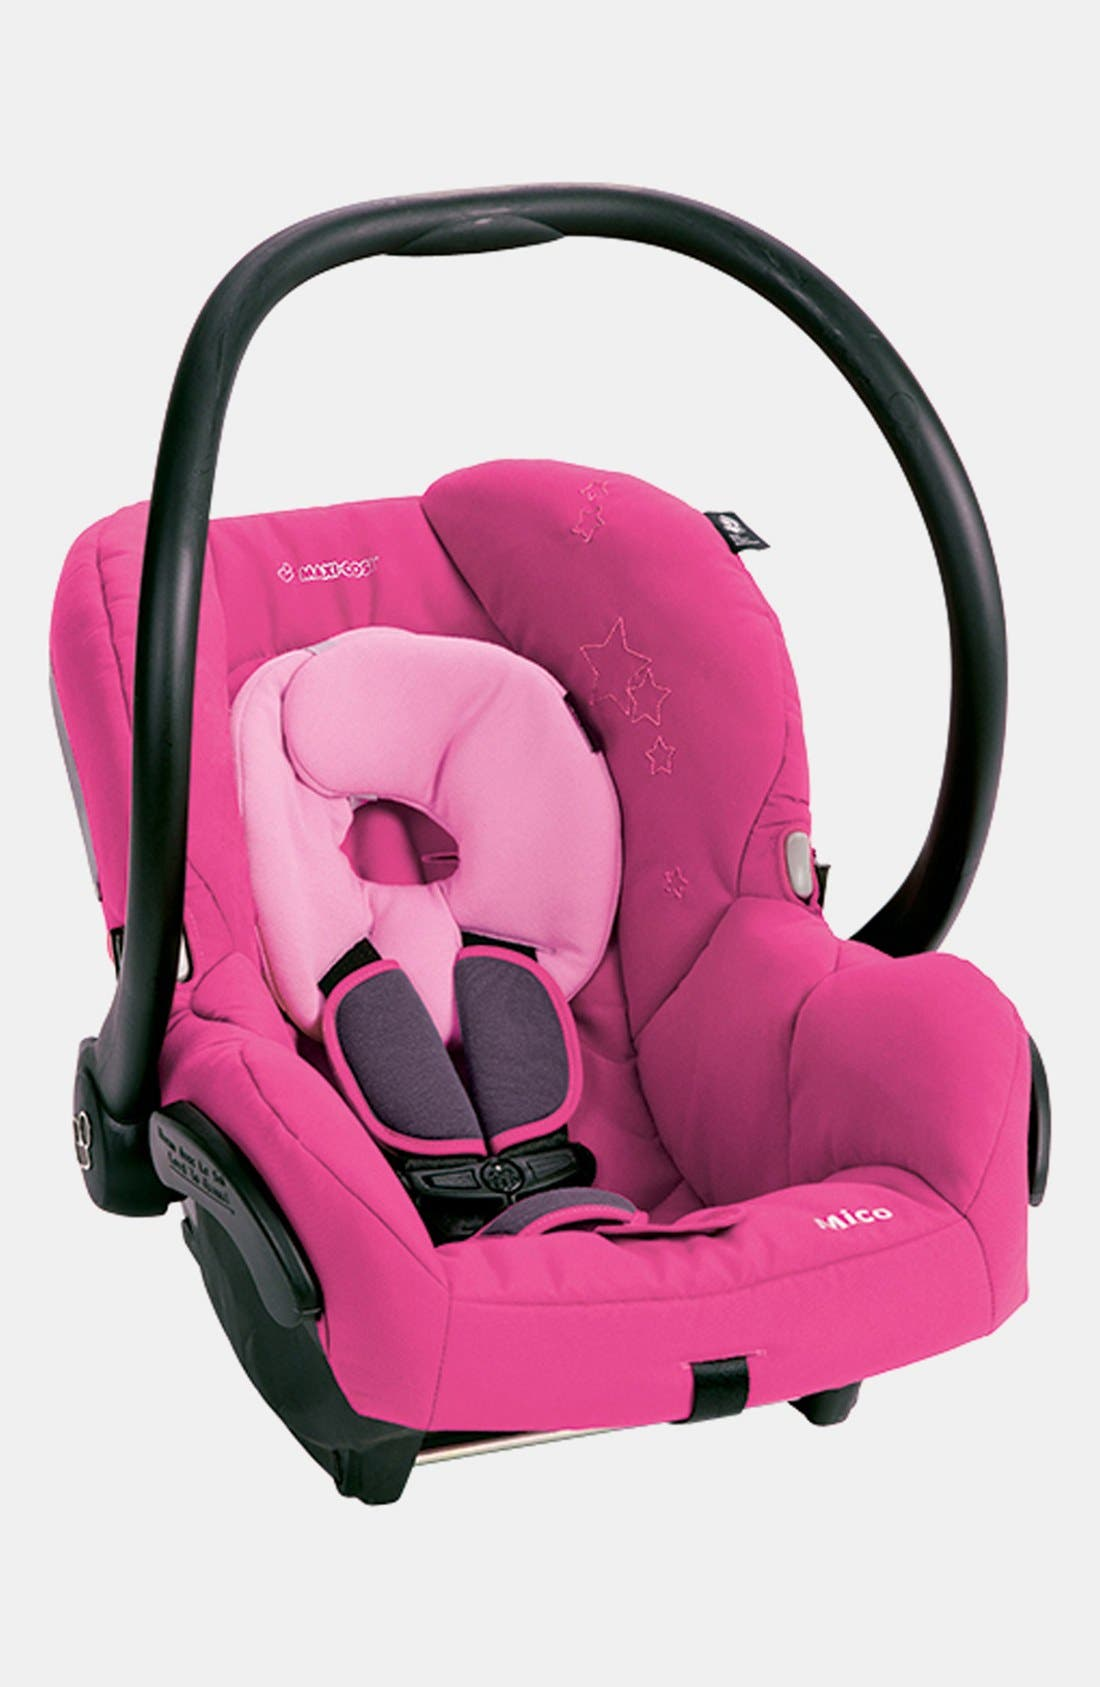 Alternate Image 1 Selected - Maxi-Cosi® 'Mico' Infant Car Seat